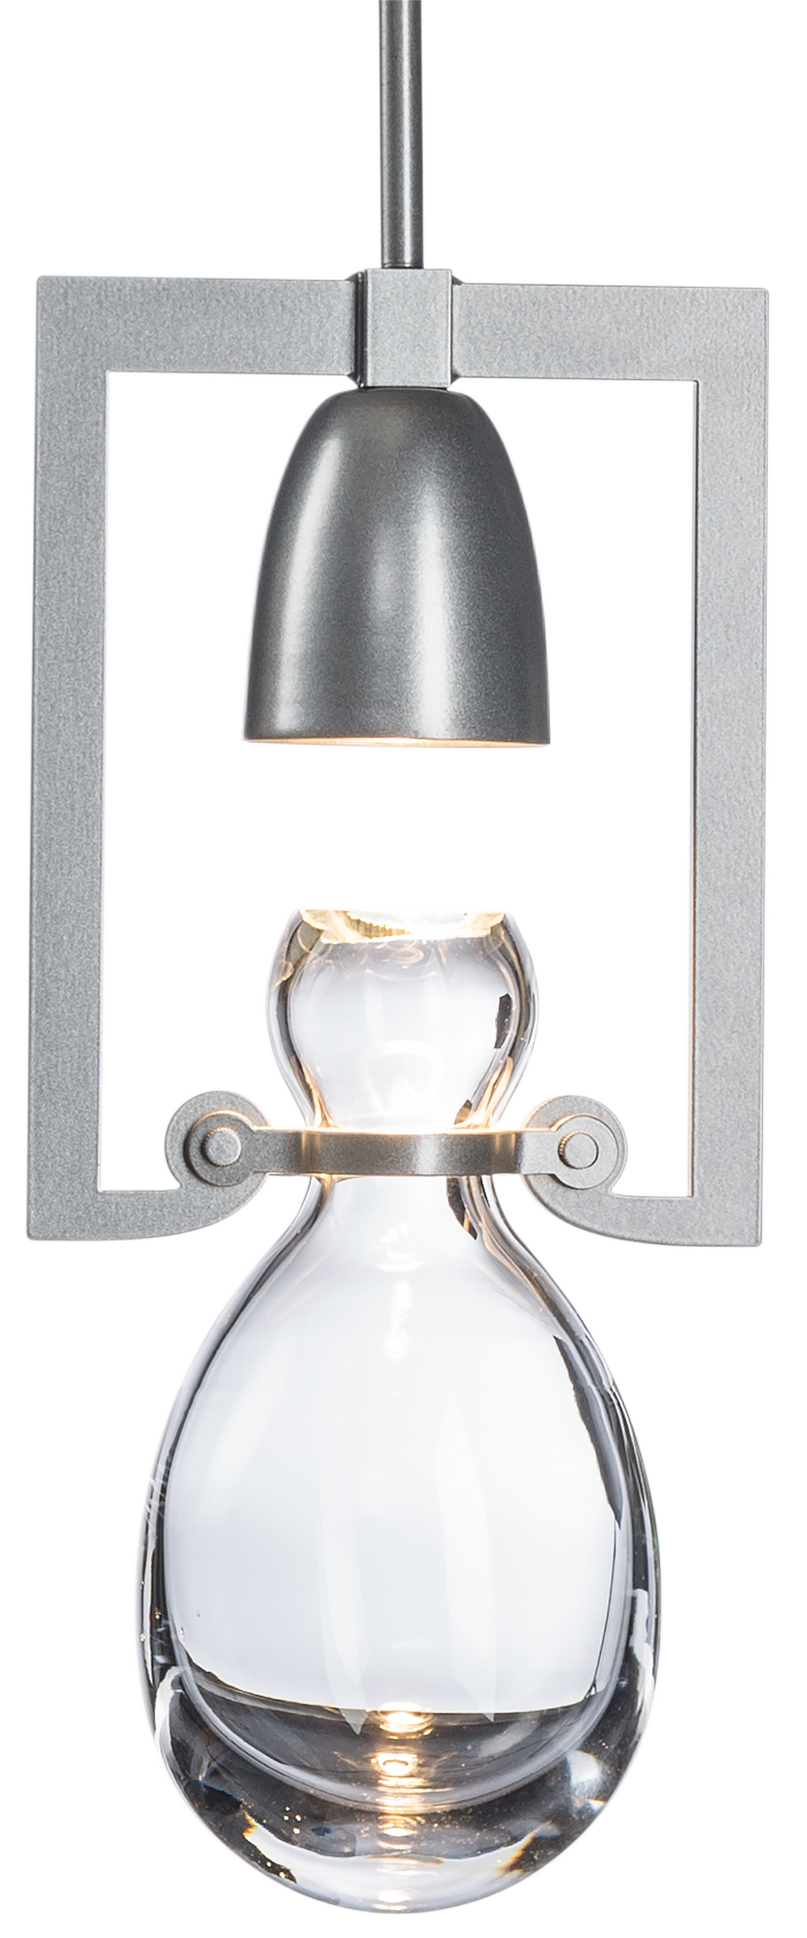 sc 1 st  Lightology & Apothecary Pendant by Hubbardton Forge | 187520-1014